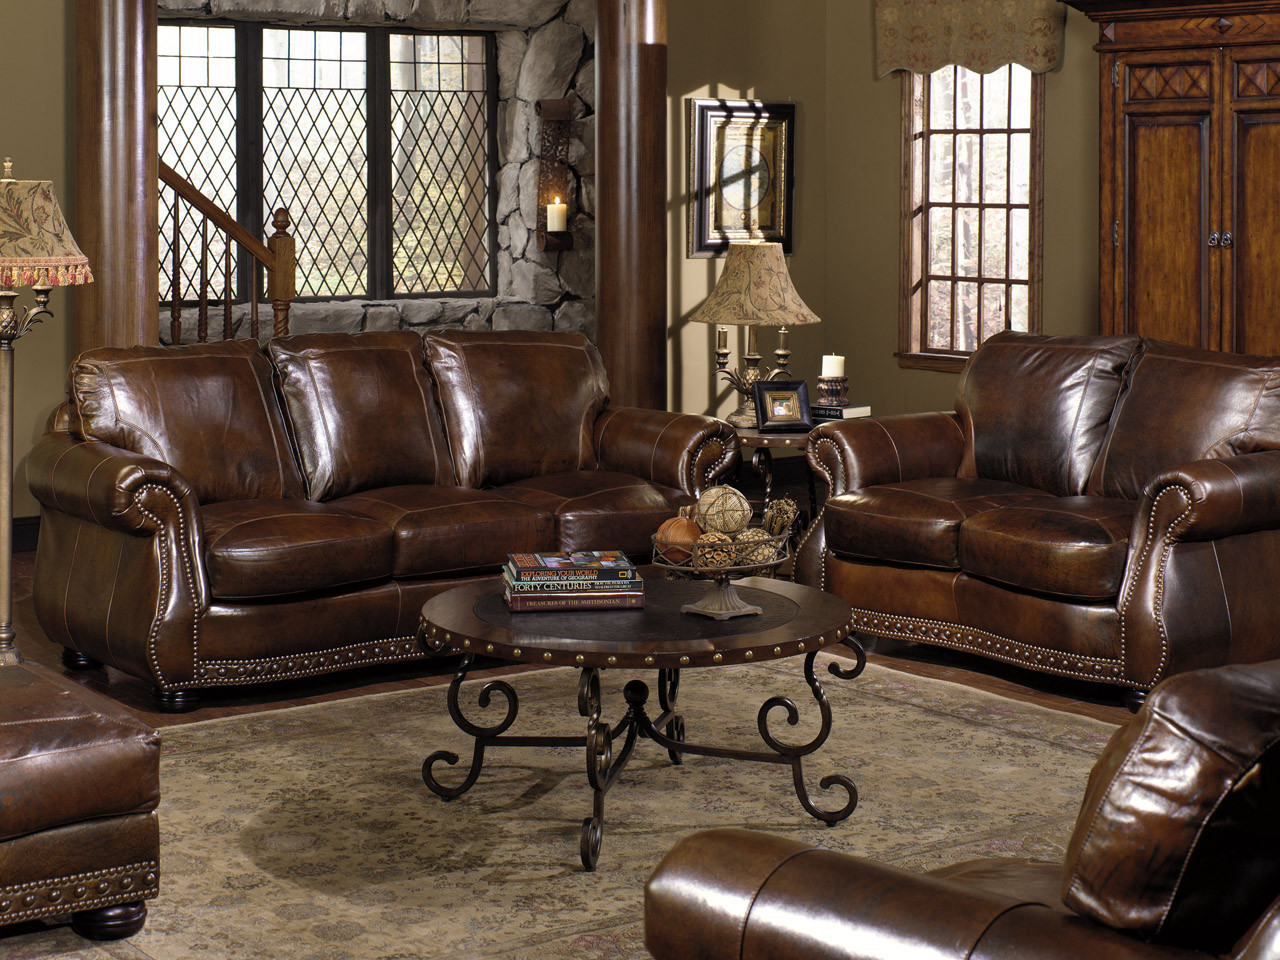 Leather Sofa Love Seat Chair Ottoman Rocking Recliner And